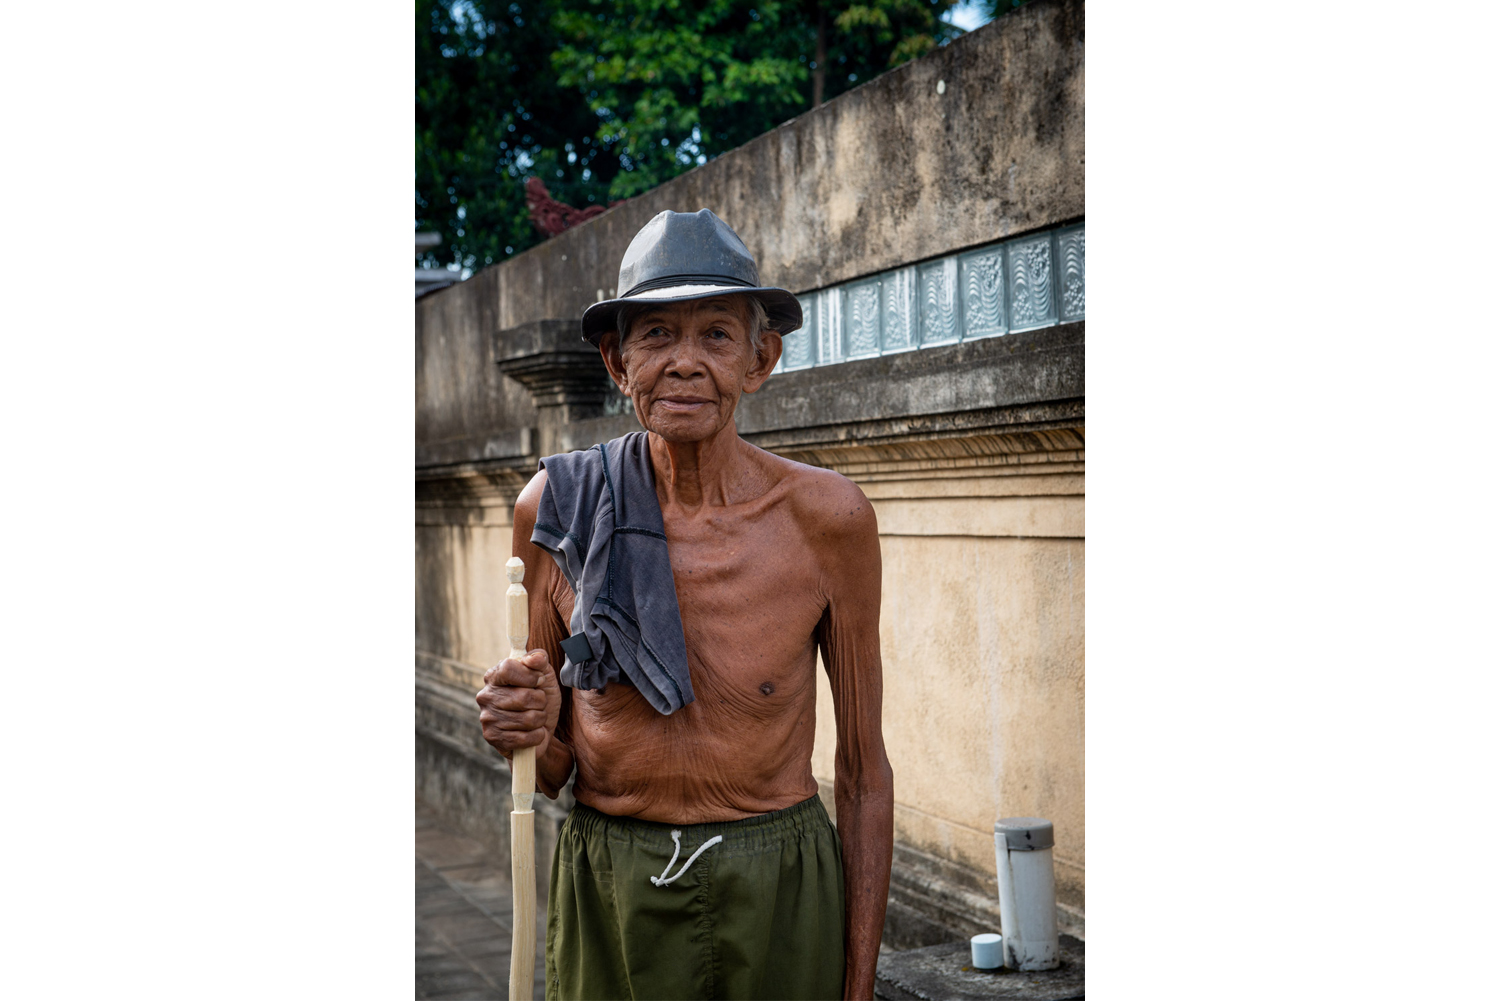 Portrait of an old, wrinkled man in Bali, Indonesia.